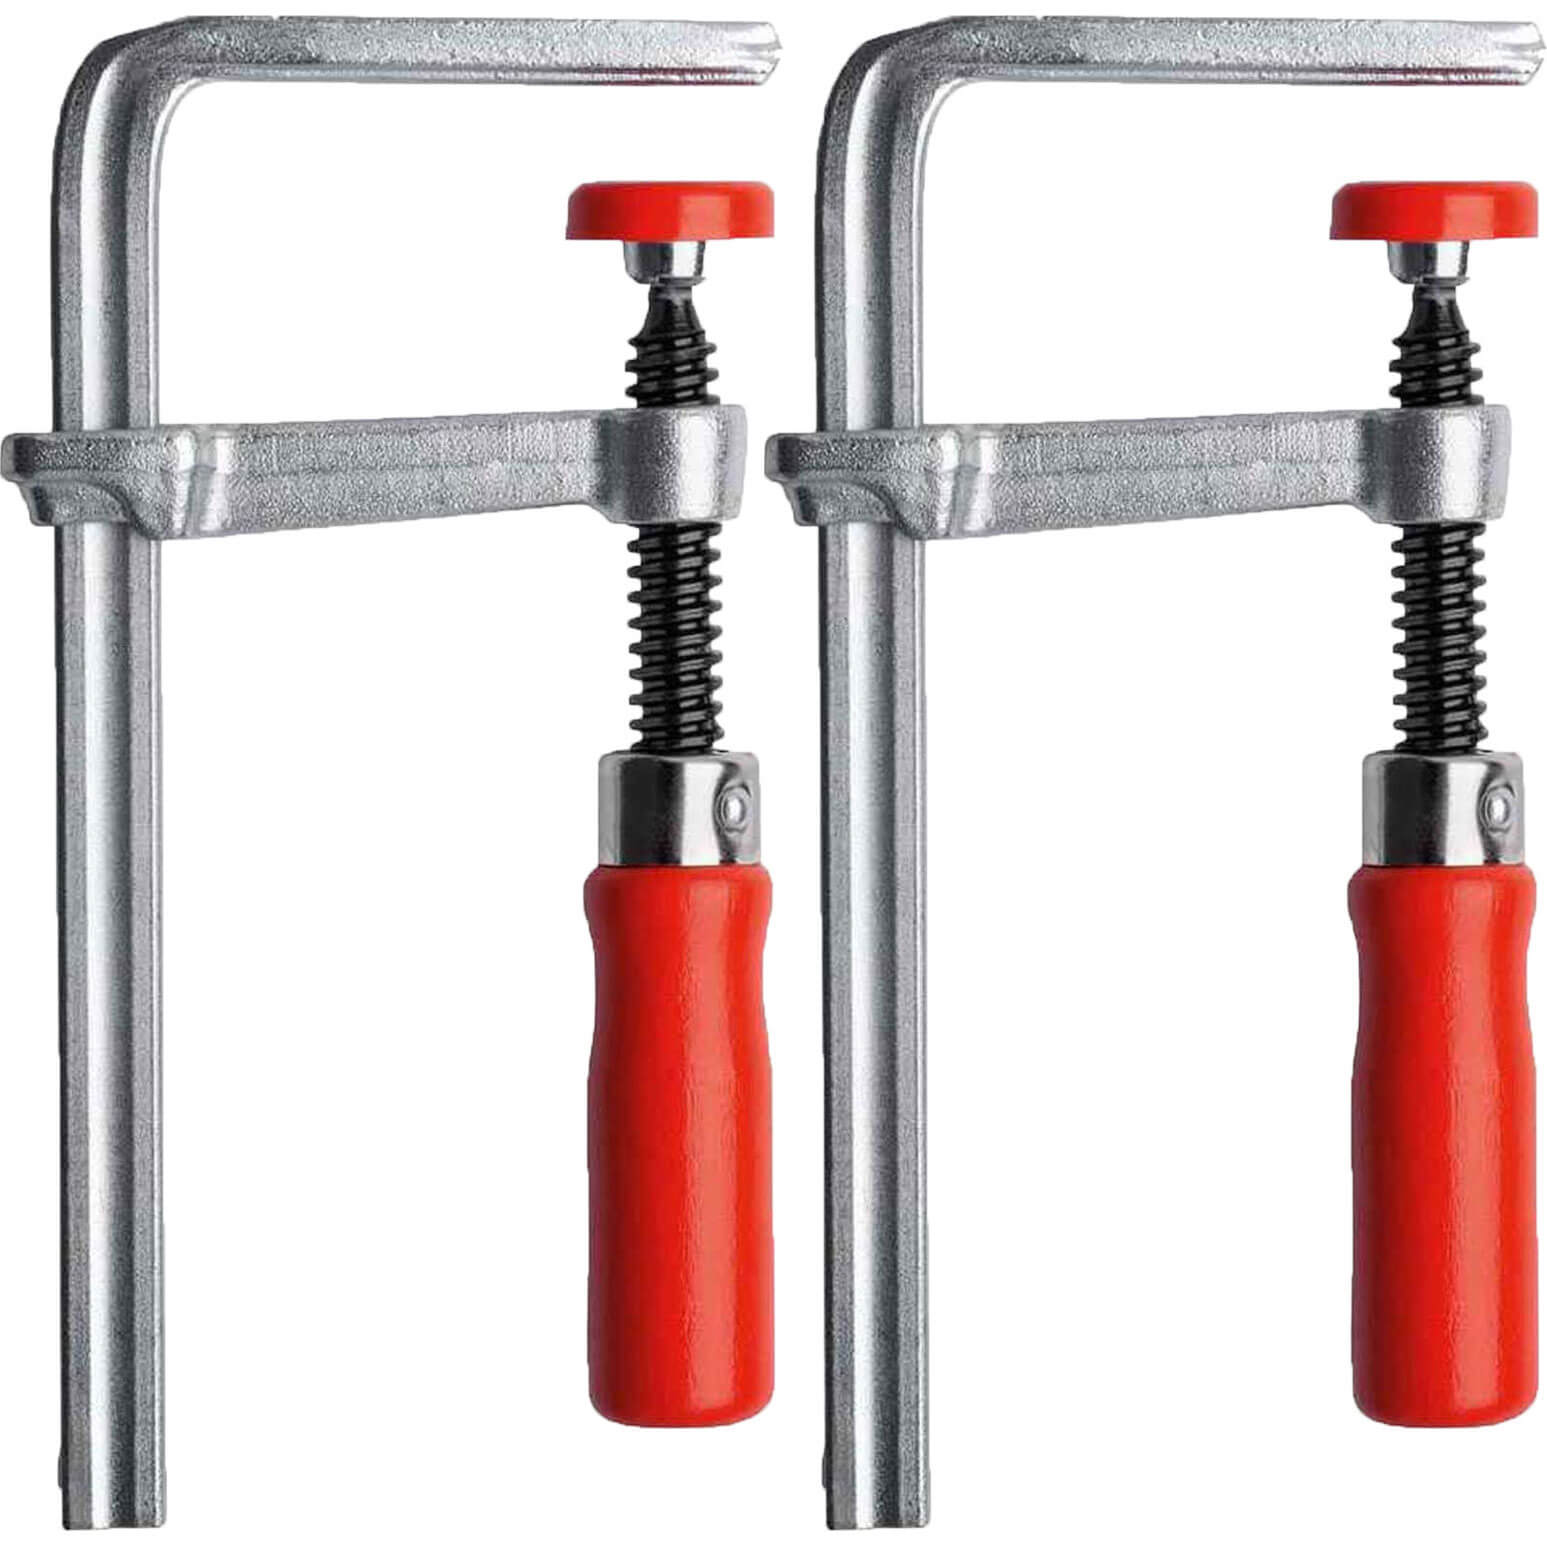 Image of Bessey 2 Piece GTR Guide Rail Clamp Set